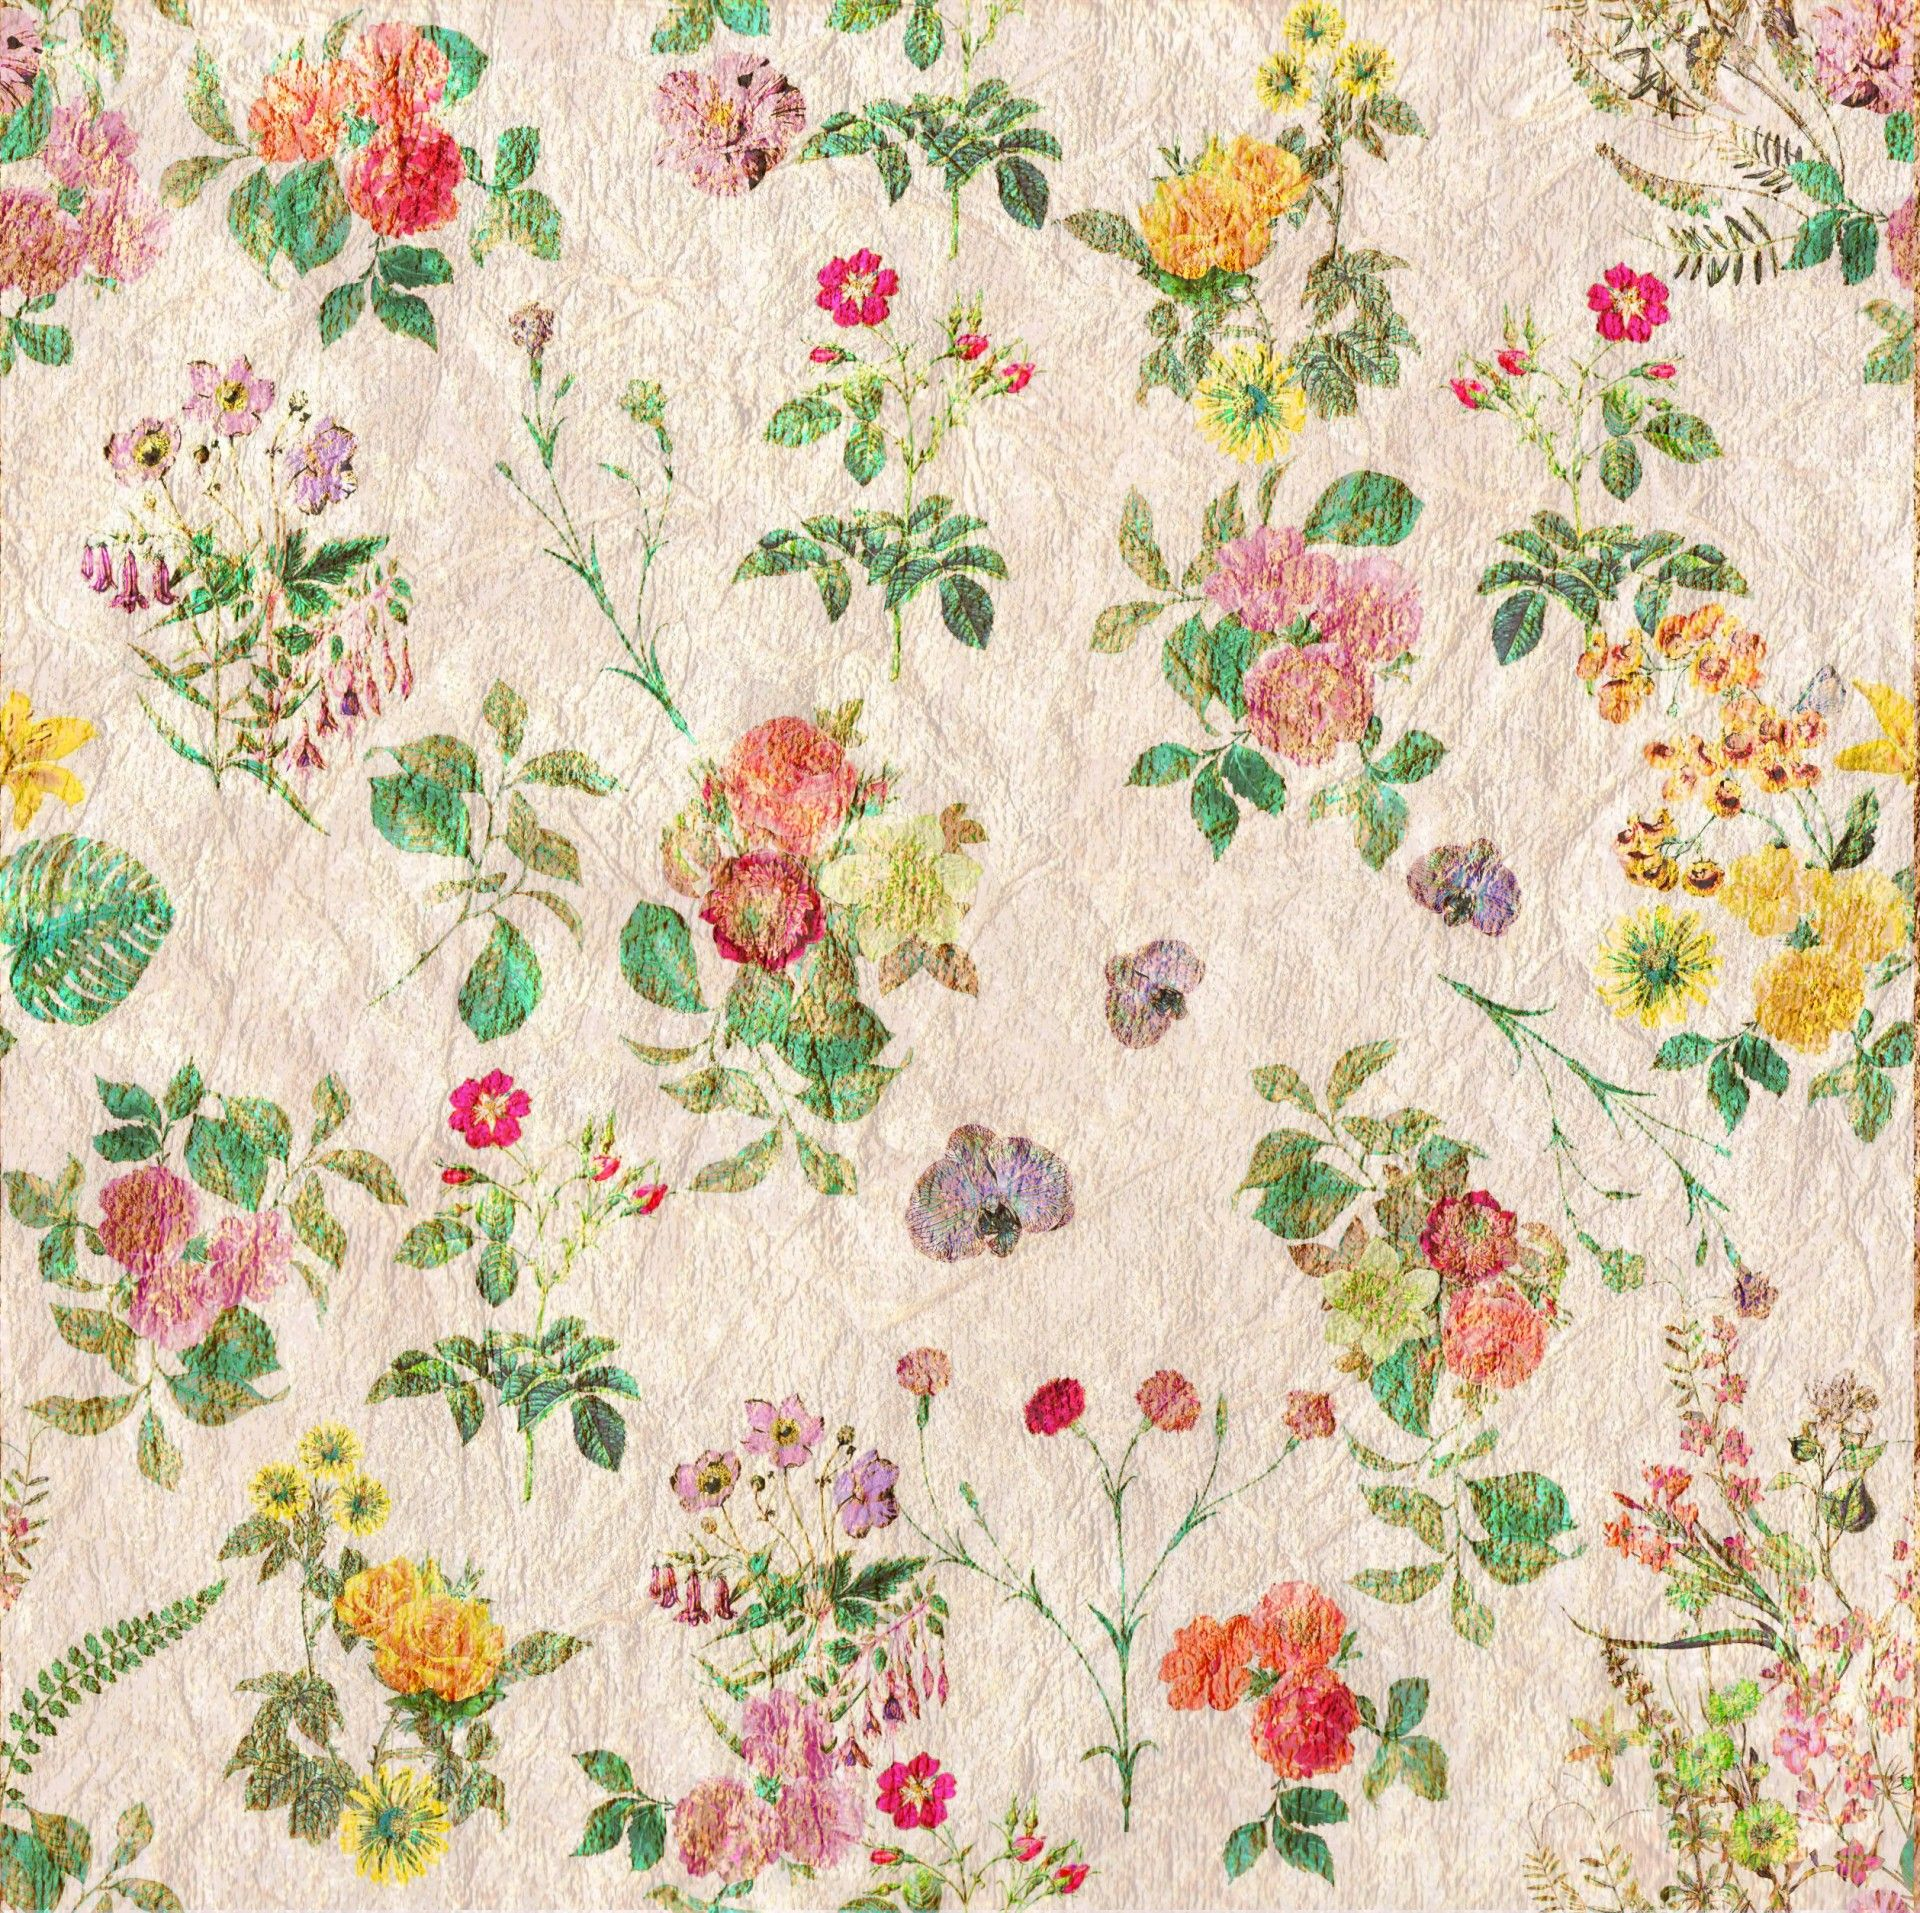 Vintage Flowers Wallpaper